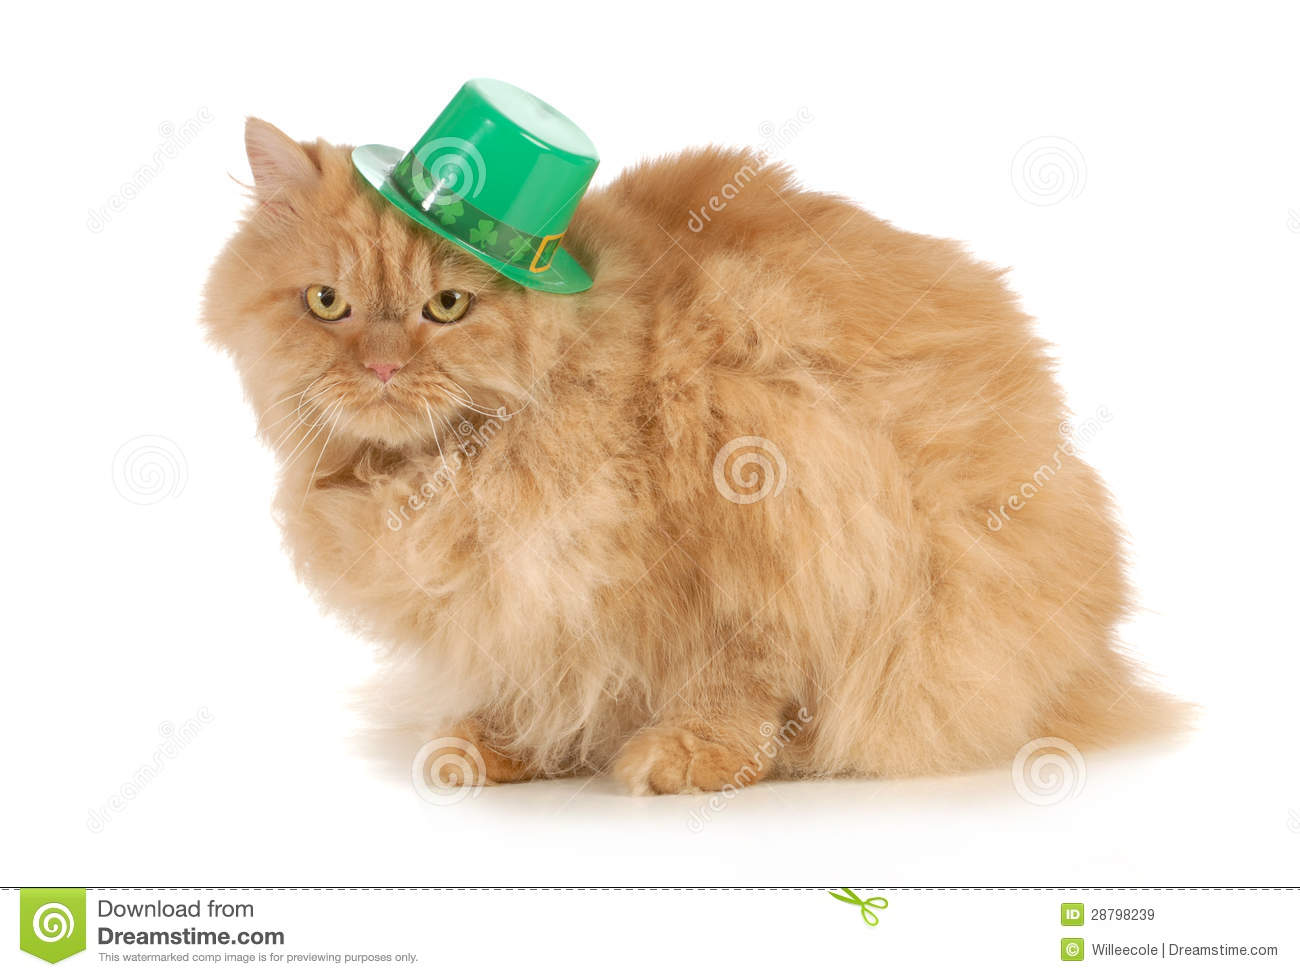 St Patricks Day cat looking at viewer isolated on white background.